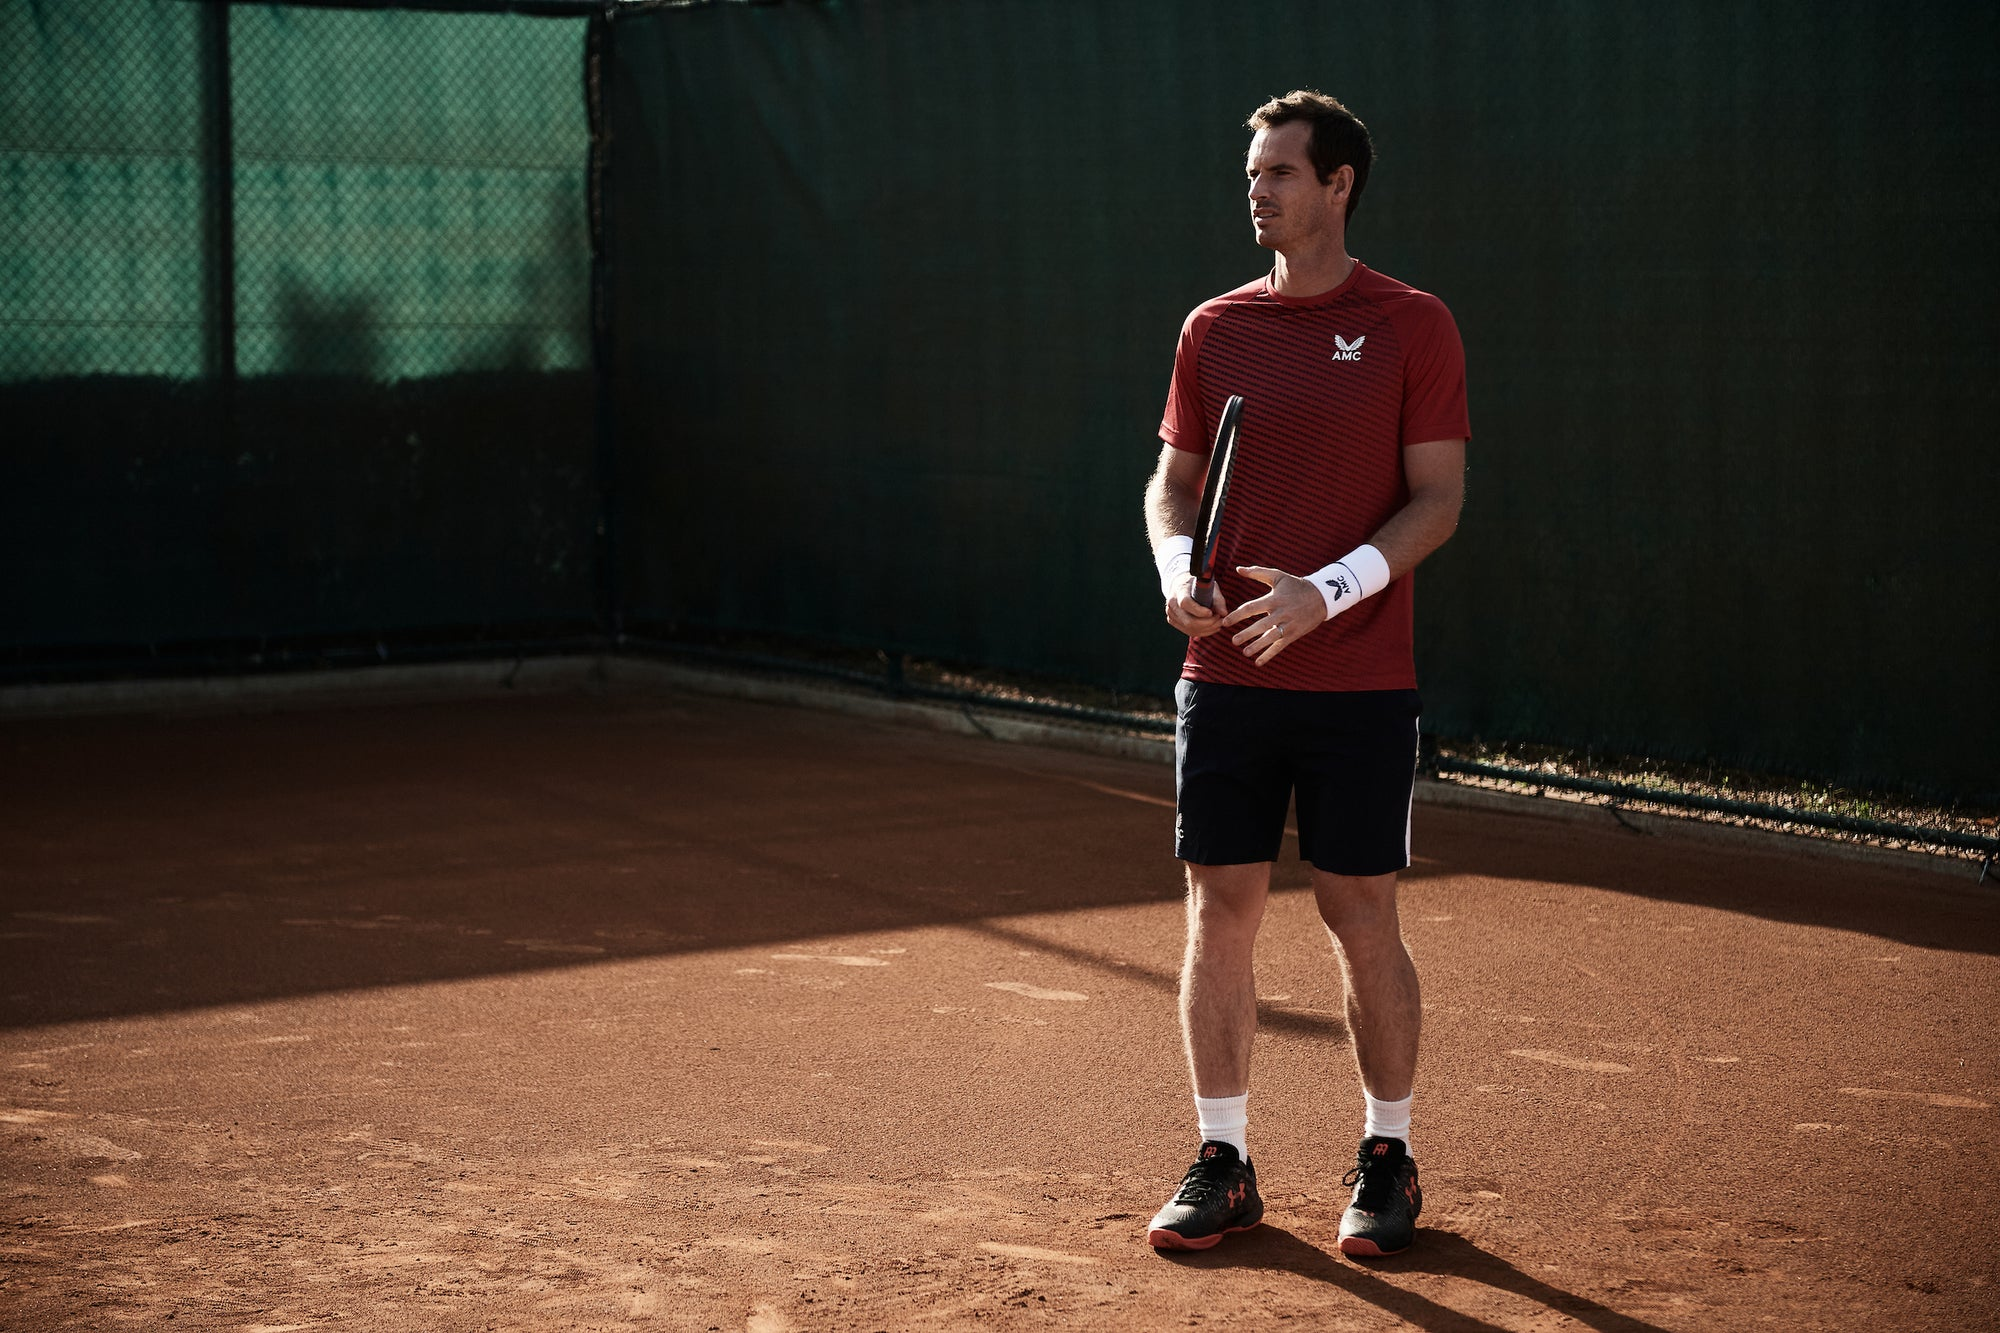 Andy returns to the court in AMC